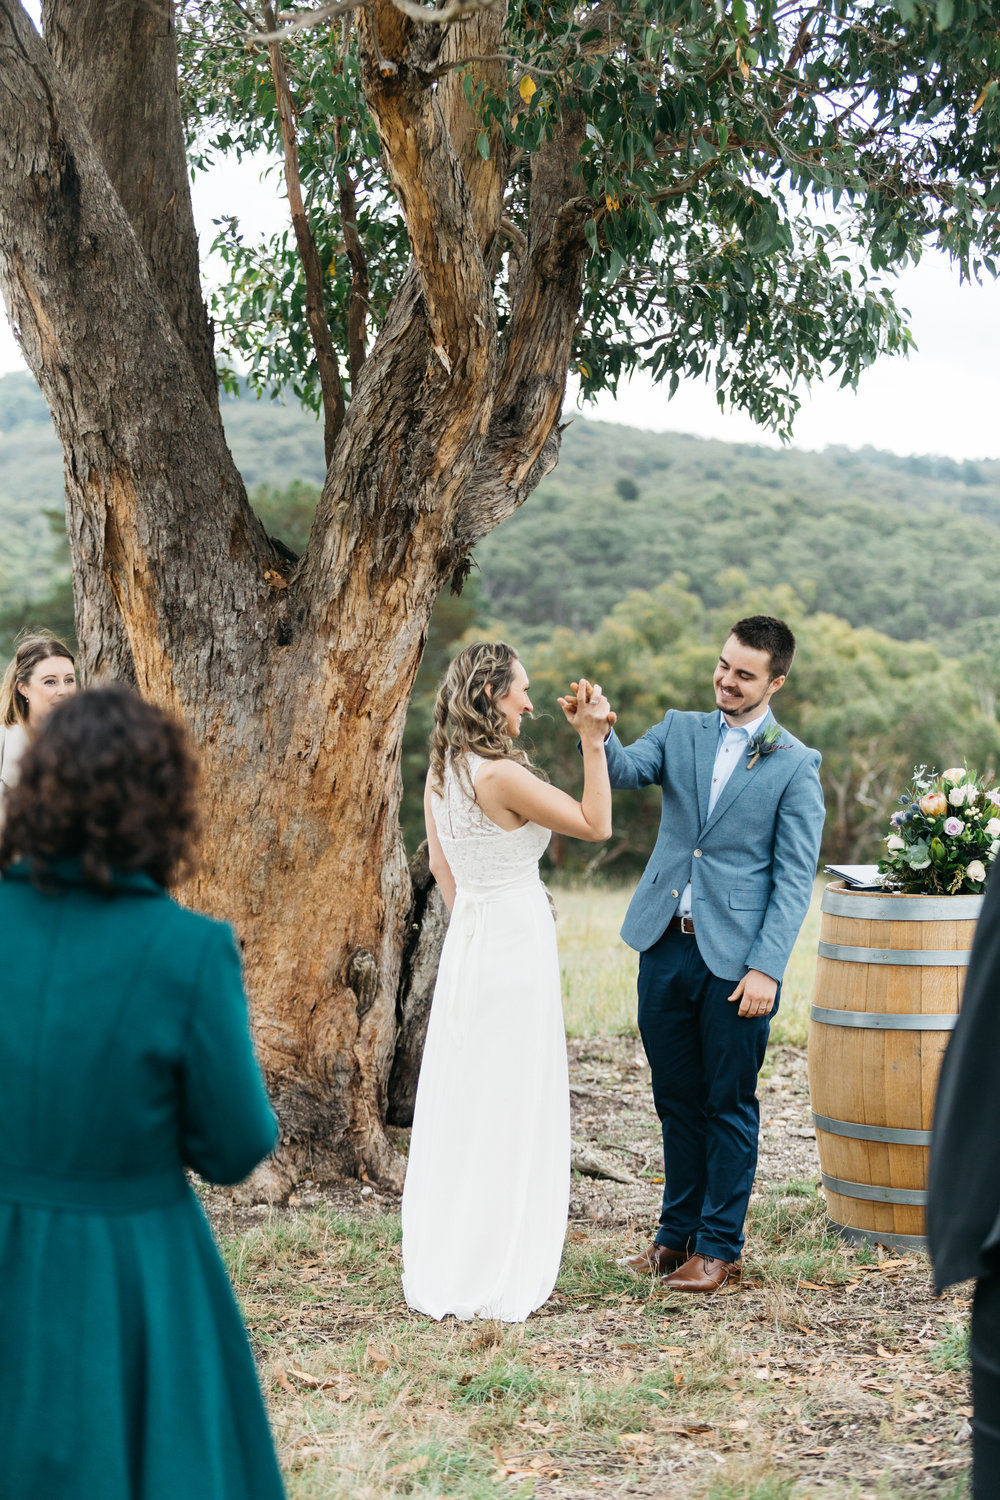 Mylor Farm Elopement South Australia 015.jpg